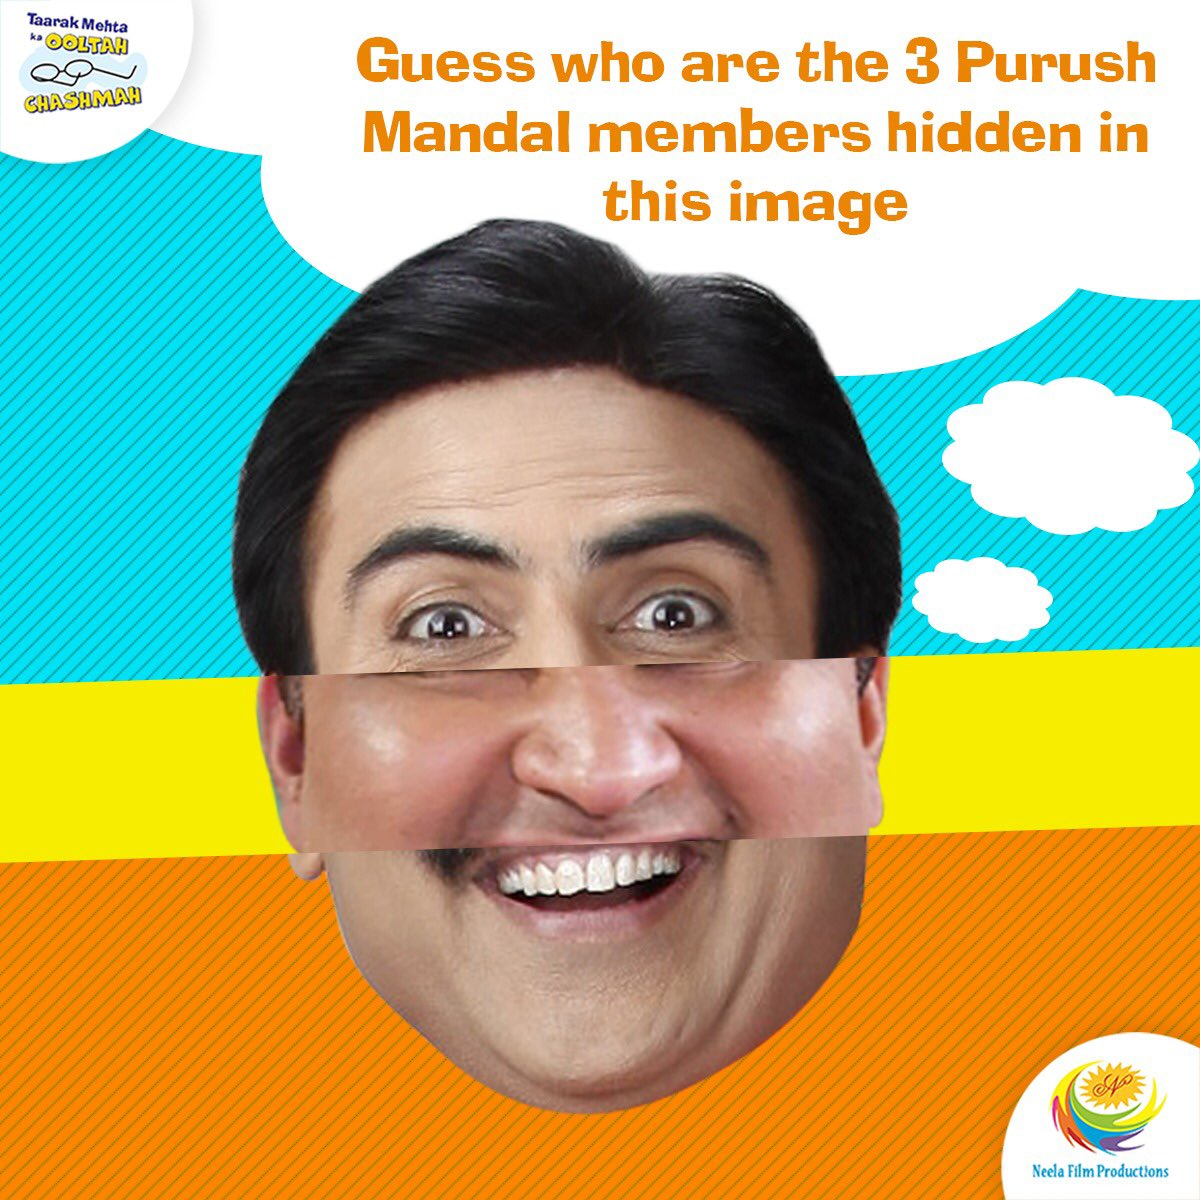 A mystery of three is always something that doesn't get solved for free! #QuarantineWithTMKOC #TMKOC #TaarakMehtaKaOoltahChashmah #GokuldhamSociety #Comedy pic.twitter.com/FOa3lRimpm